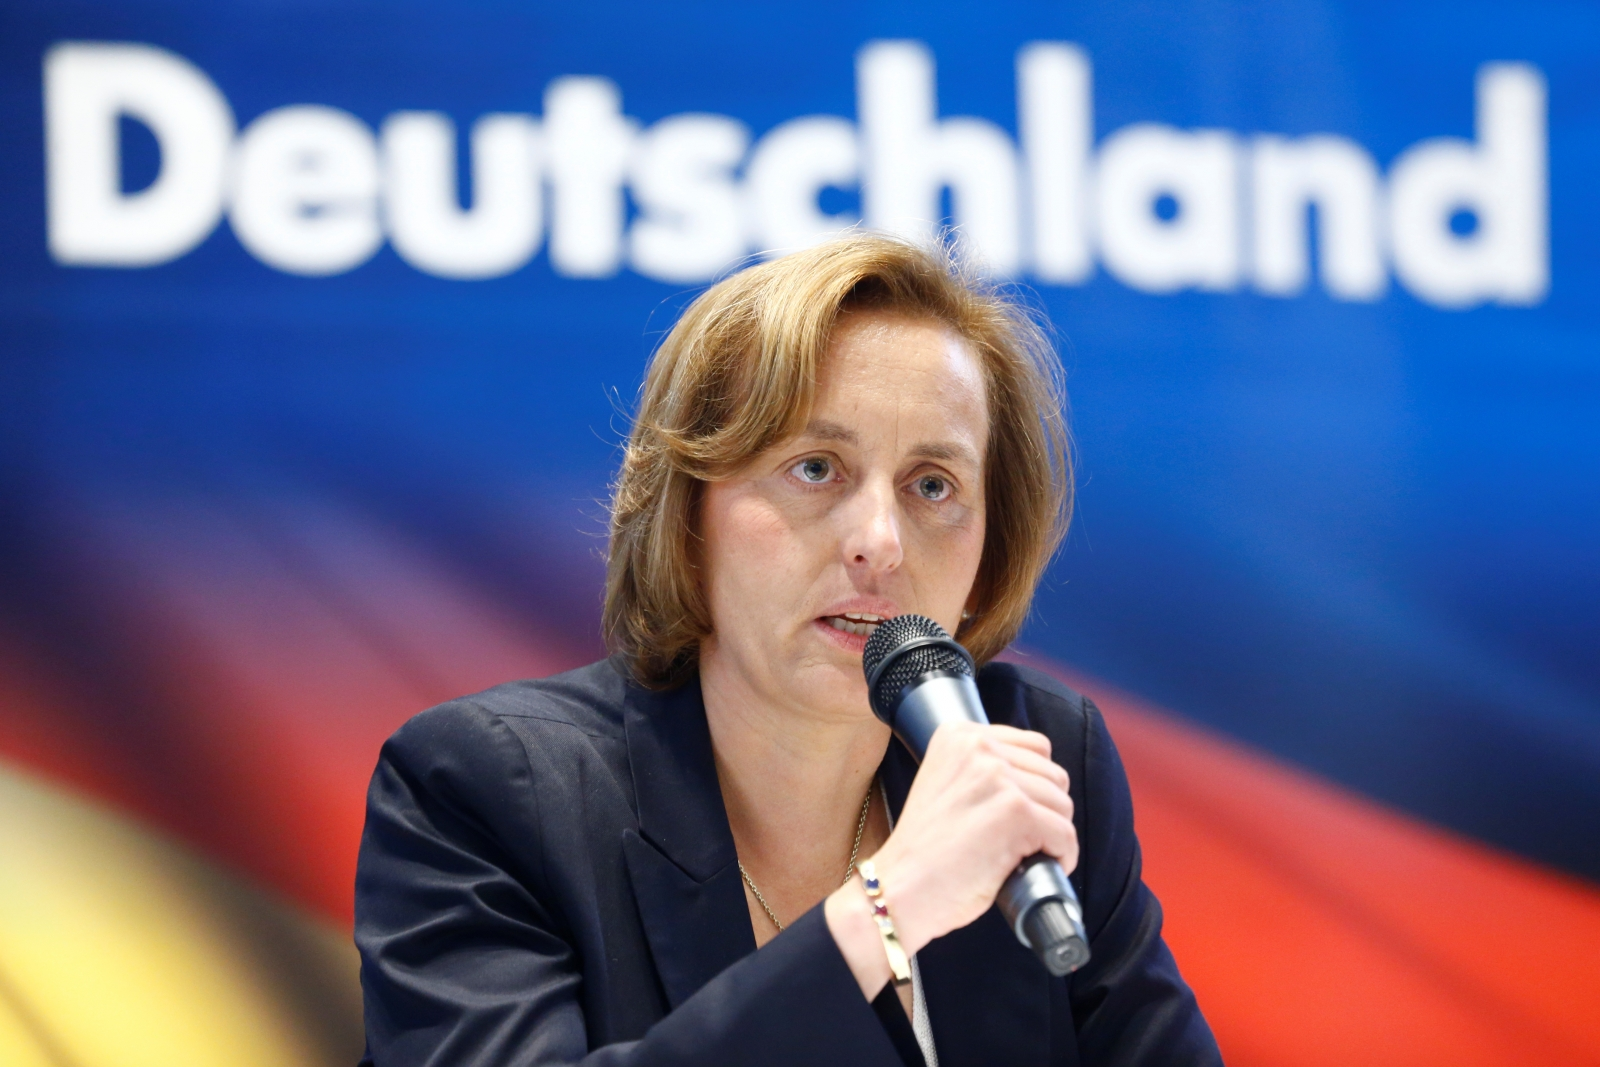 German far-right politicians slammed for anti-Muslim posts